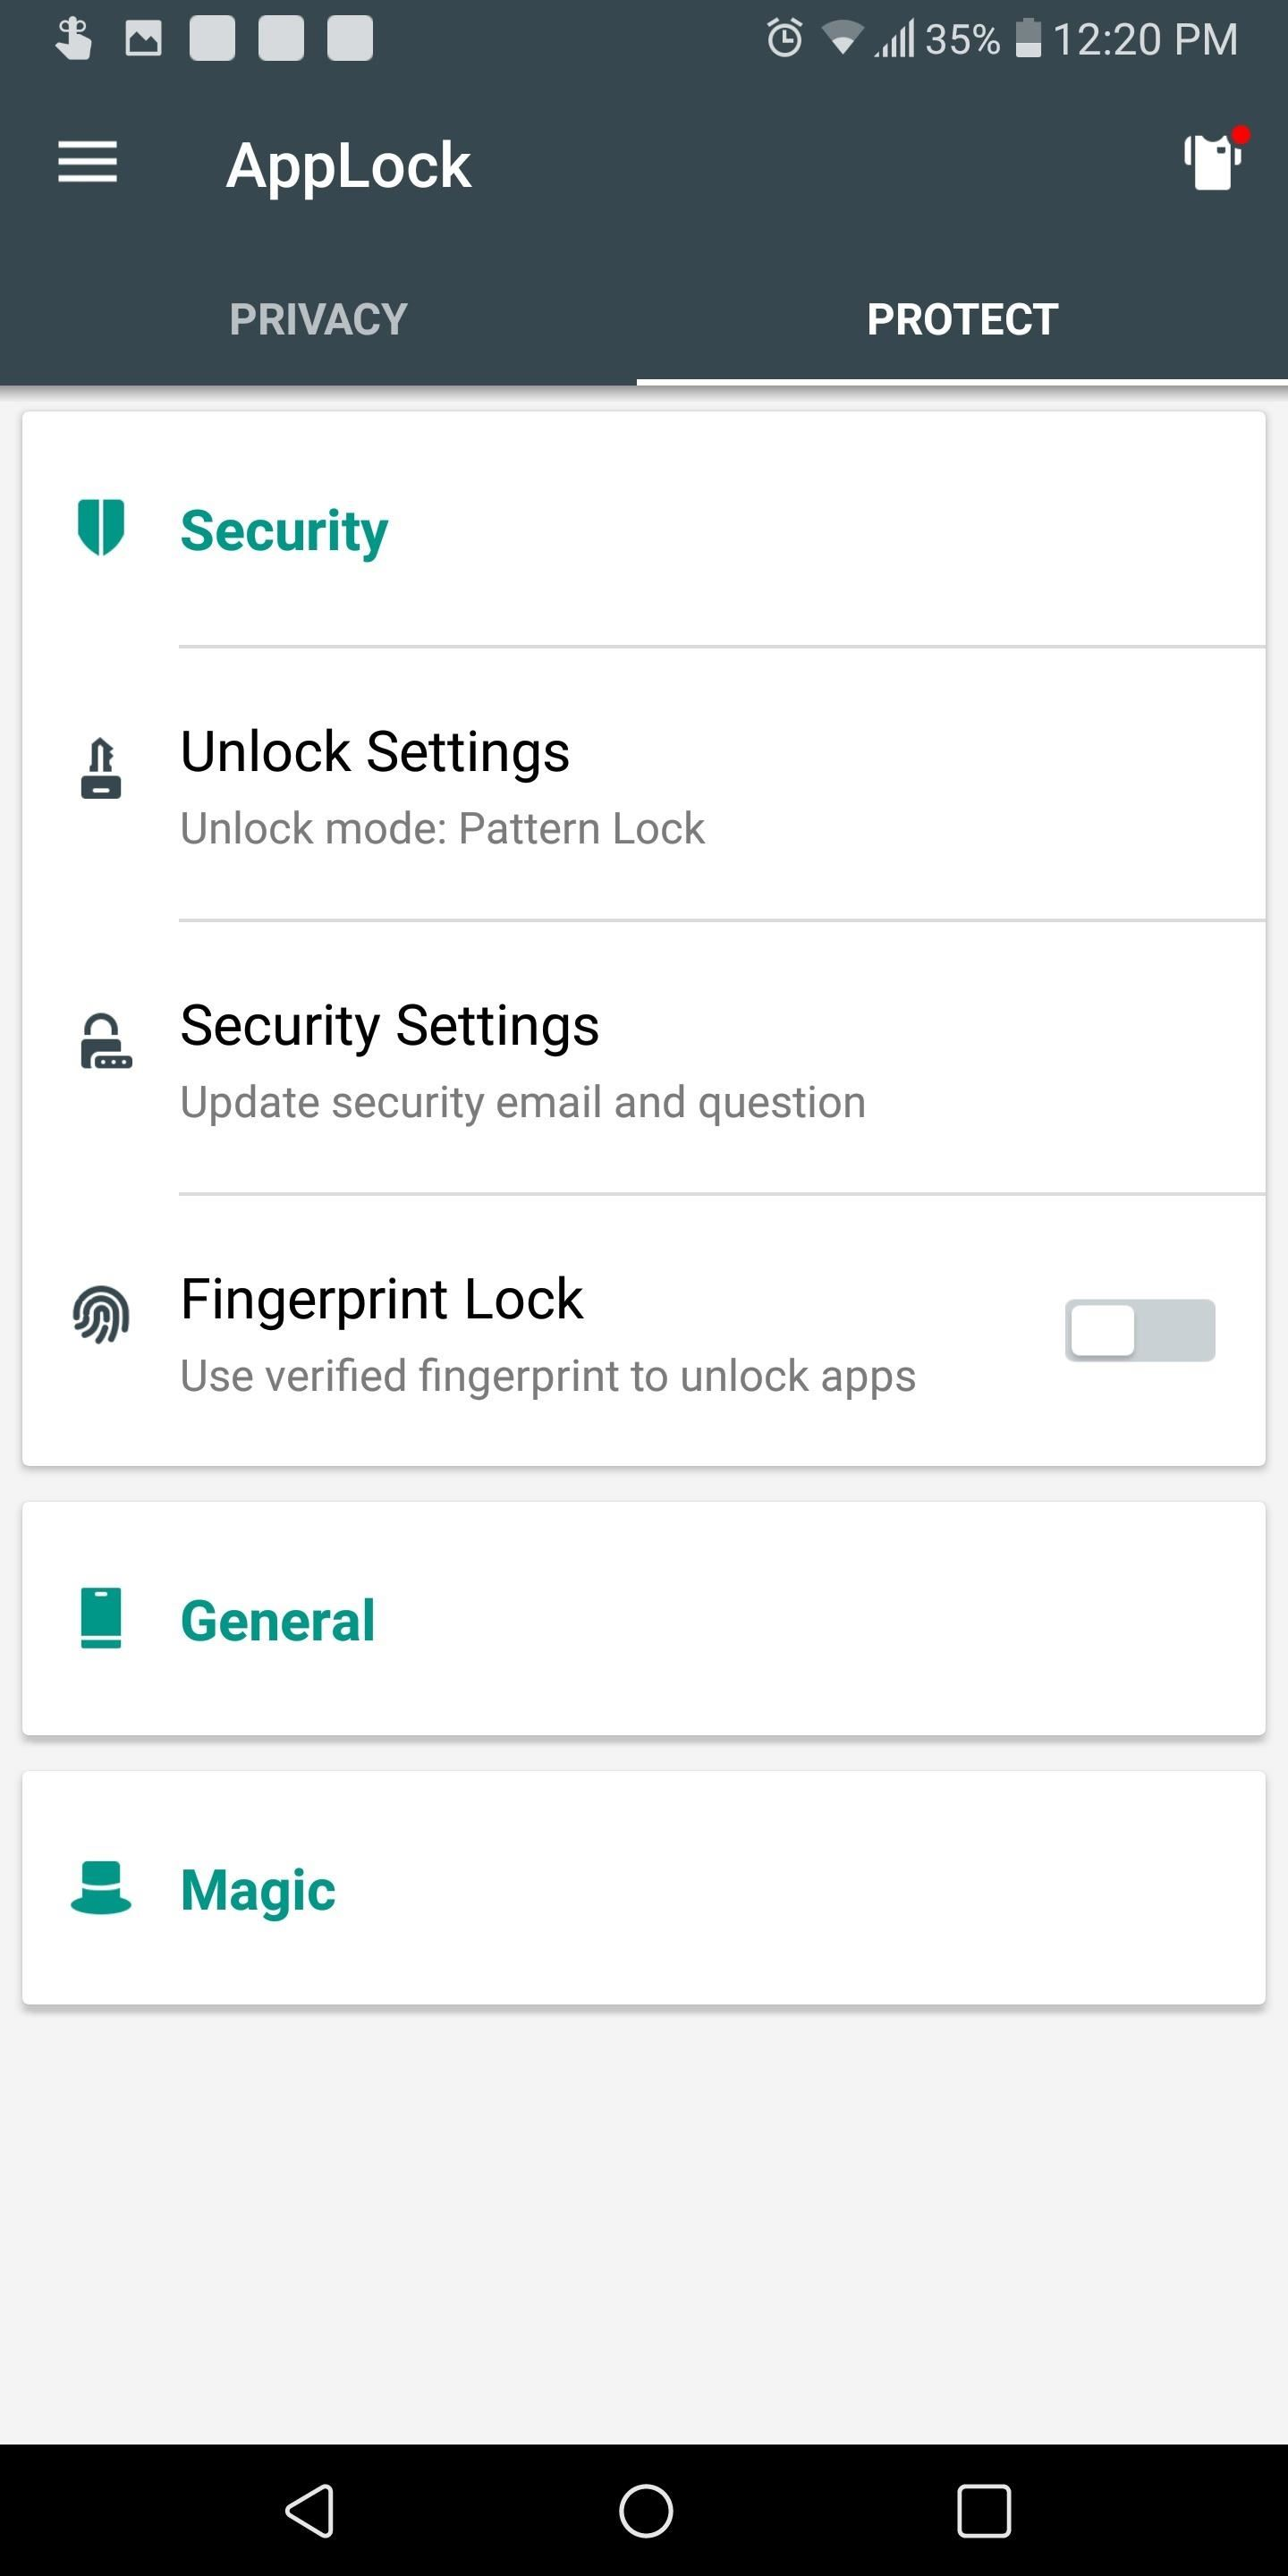 Android Security 101: How to Protect Your Data in Case Your Phone Gets Stolen